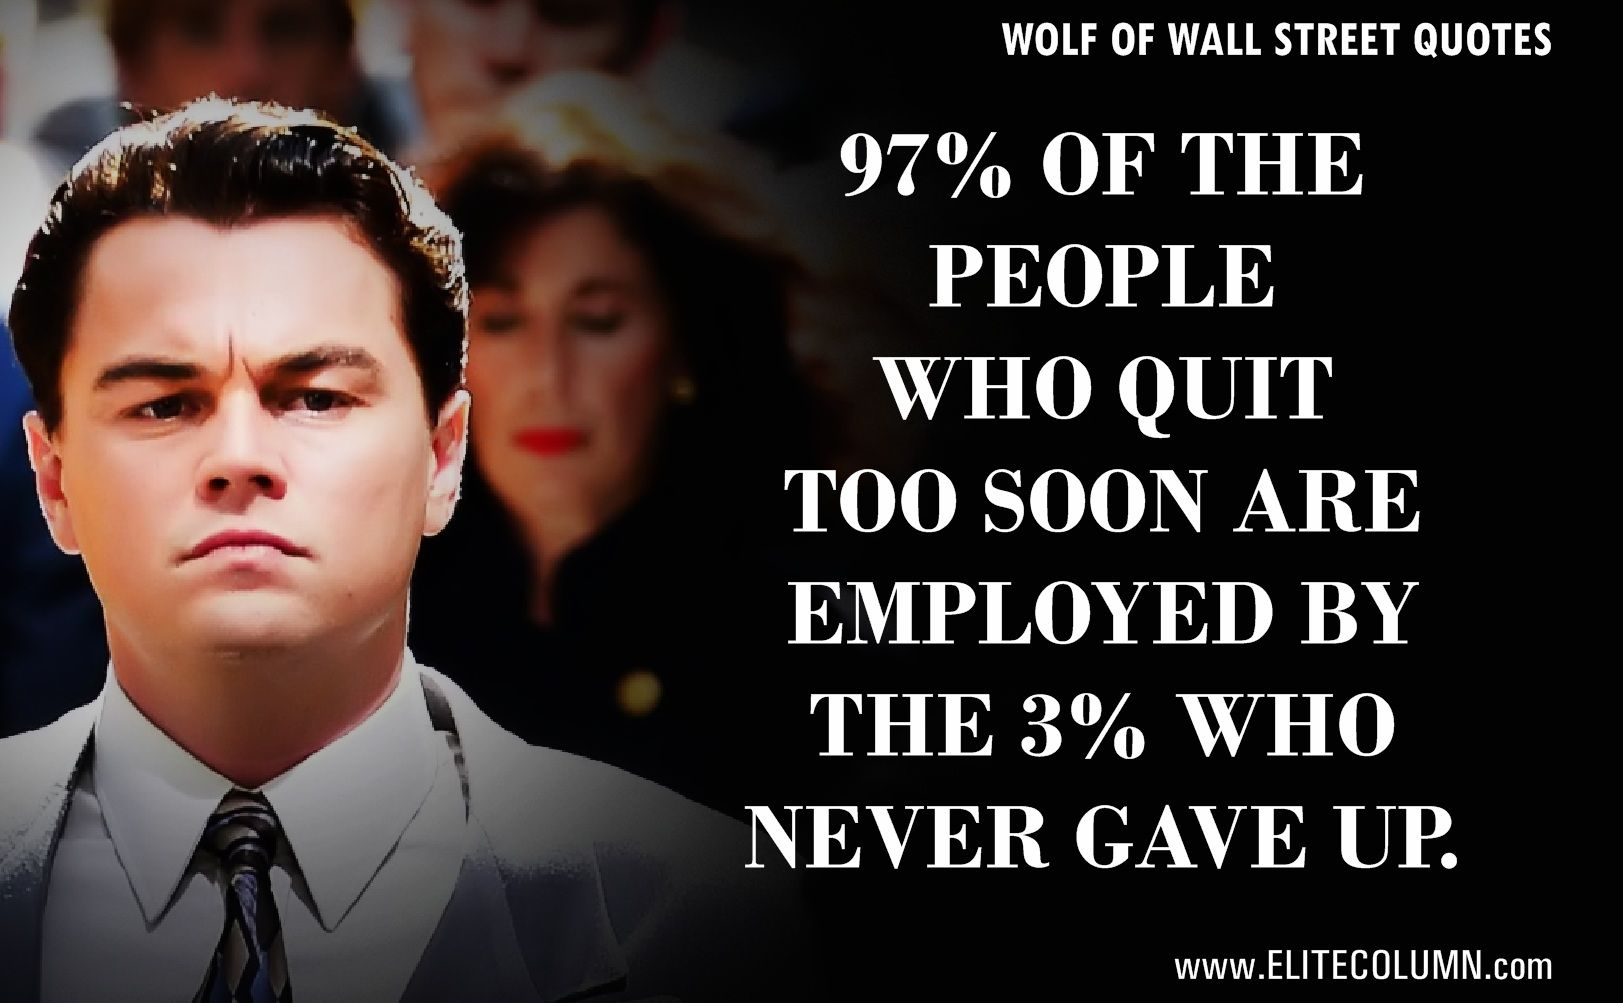 61 The Wolf Of Wall Street Quotes That Will Make You Rich Elitecolumn Leonardo Dicaprio Quotes Street Quotes Wolf Of Wall Street